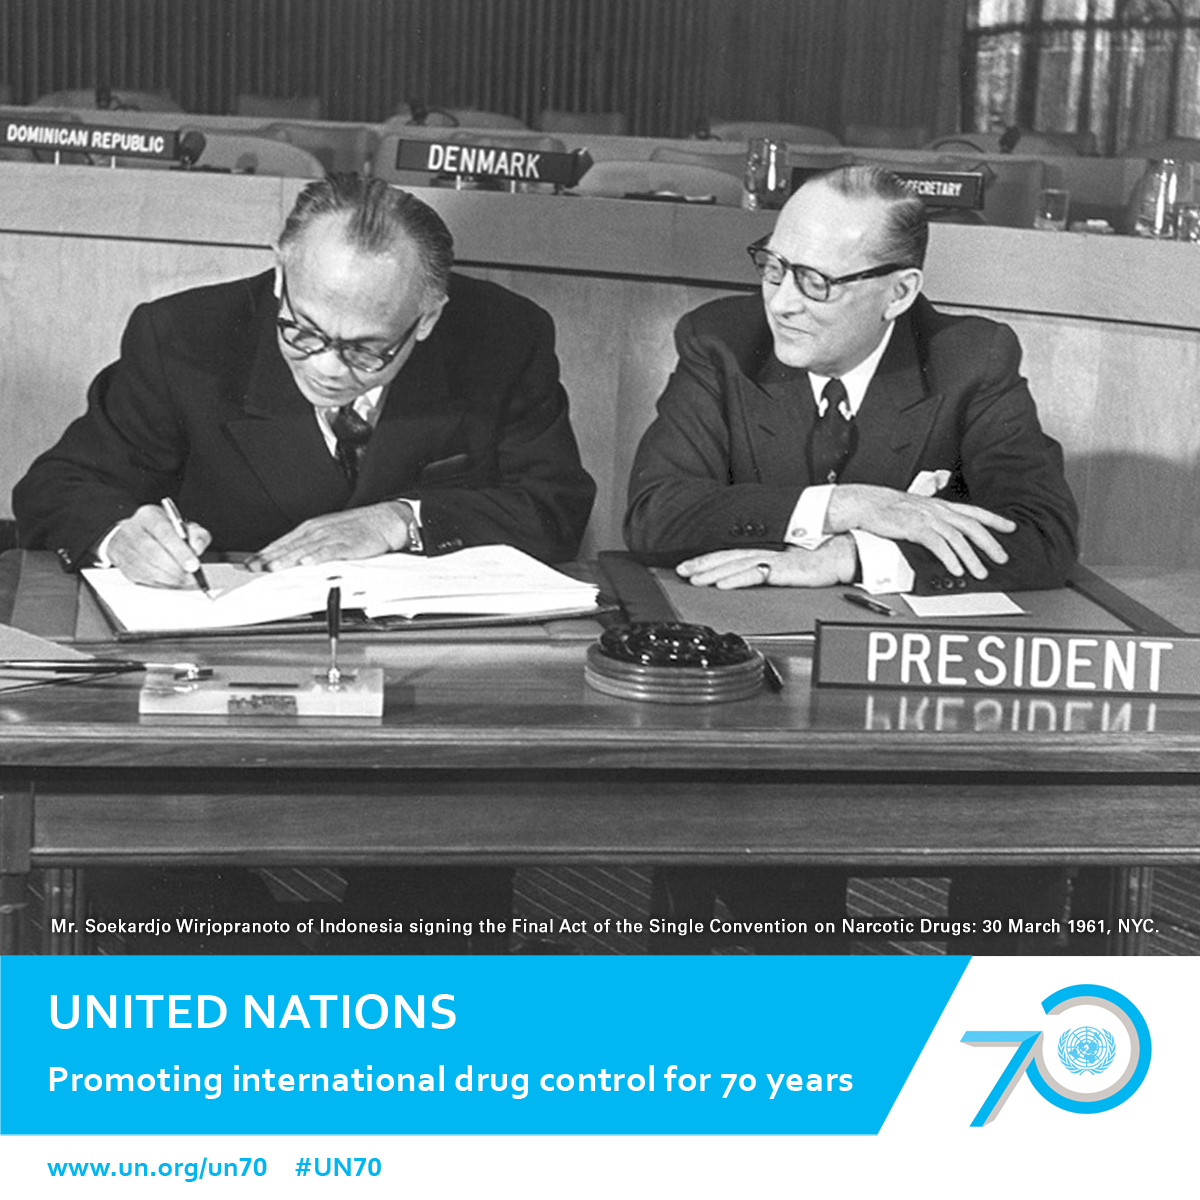 Mr. Soekardjo Wirjopranoto of Indonesia signing the Final Act of the Single Convention on Narcotic Drugs: 30 march 1961, NYC.